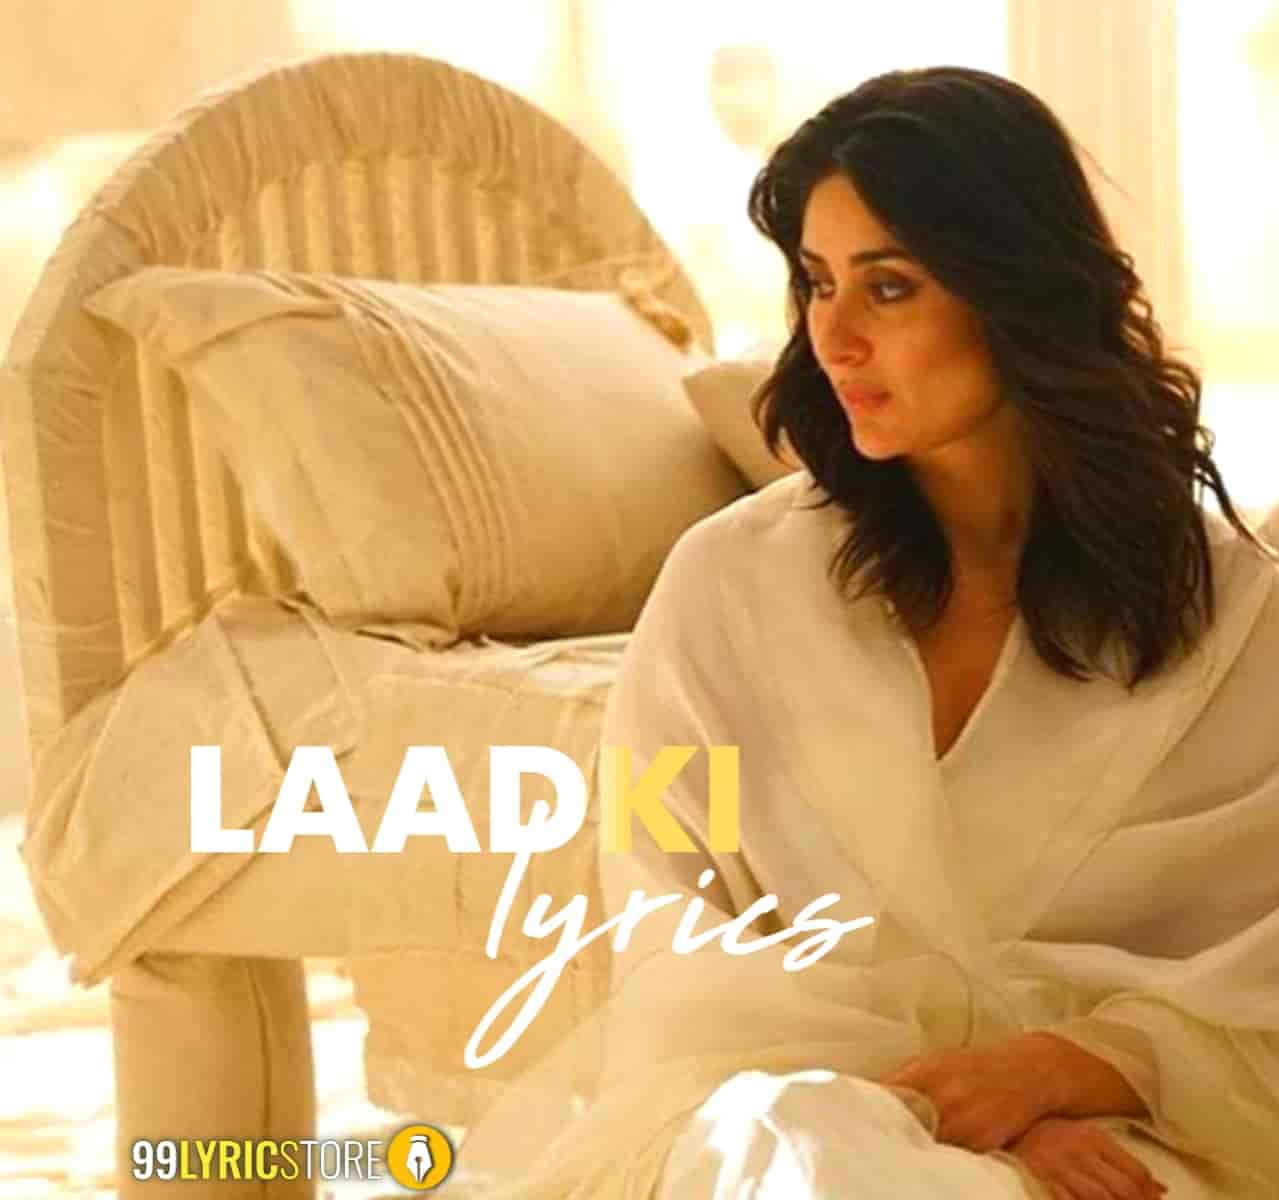 Laadki Lyrics :- Legend artist Rekha Bhardwaj And Sachin-Jigar given their soulful stirring in very beautiful song which is titled Laadki from Irfan Khan and Kareena Kapoor Khan starrer movie Angrezi Medium. Music of this song given also by very talented duo Sachin-Jigar while this beautiful song Laadki lyrics has penned by Priya Saraiya. This song is presented by T-Series label.